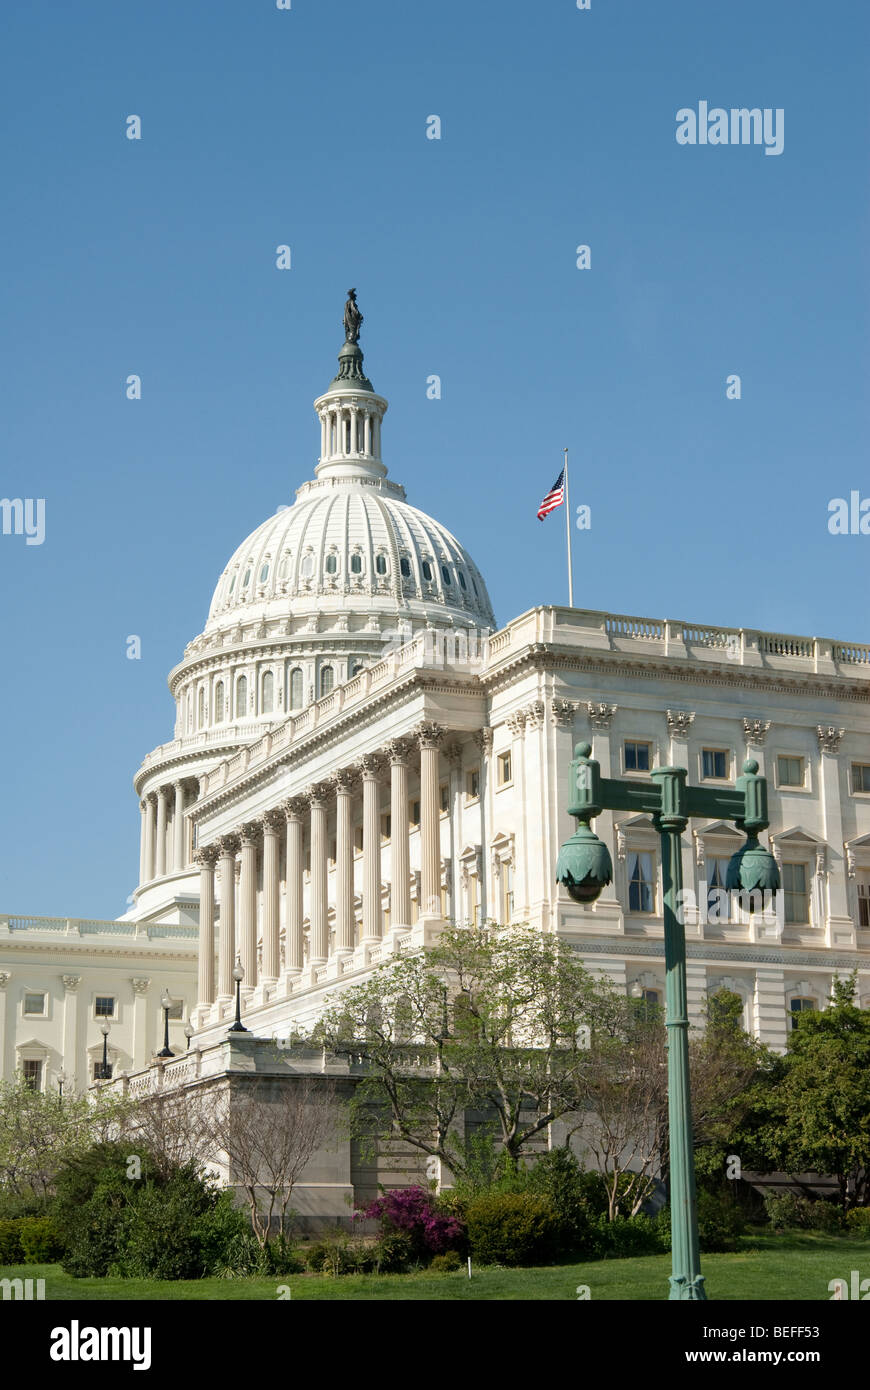 Surveillance cameras watching the U.S. Capitol grounds in Washington D.C. - Stock Image